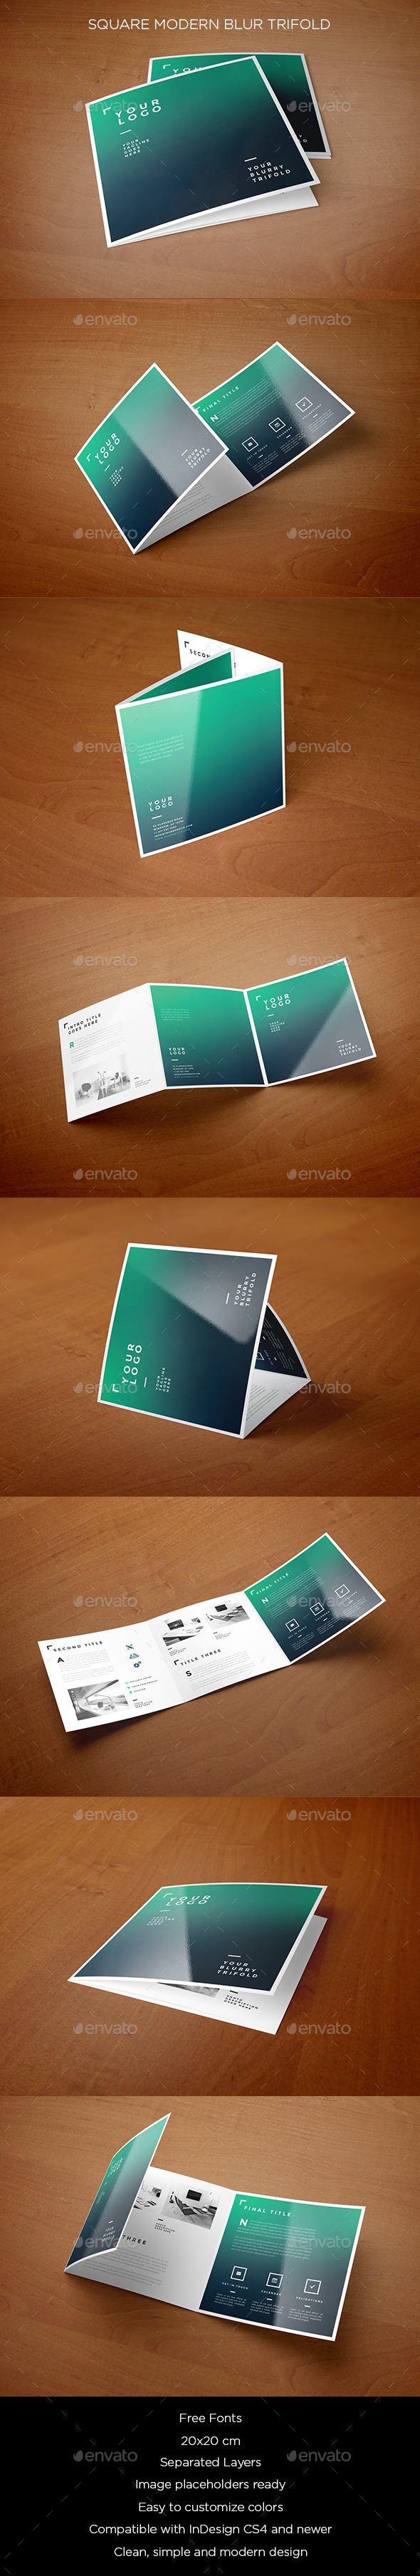 Square Modern Blur Trifold - Brochures Print Templates